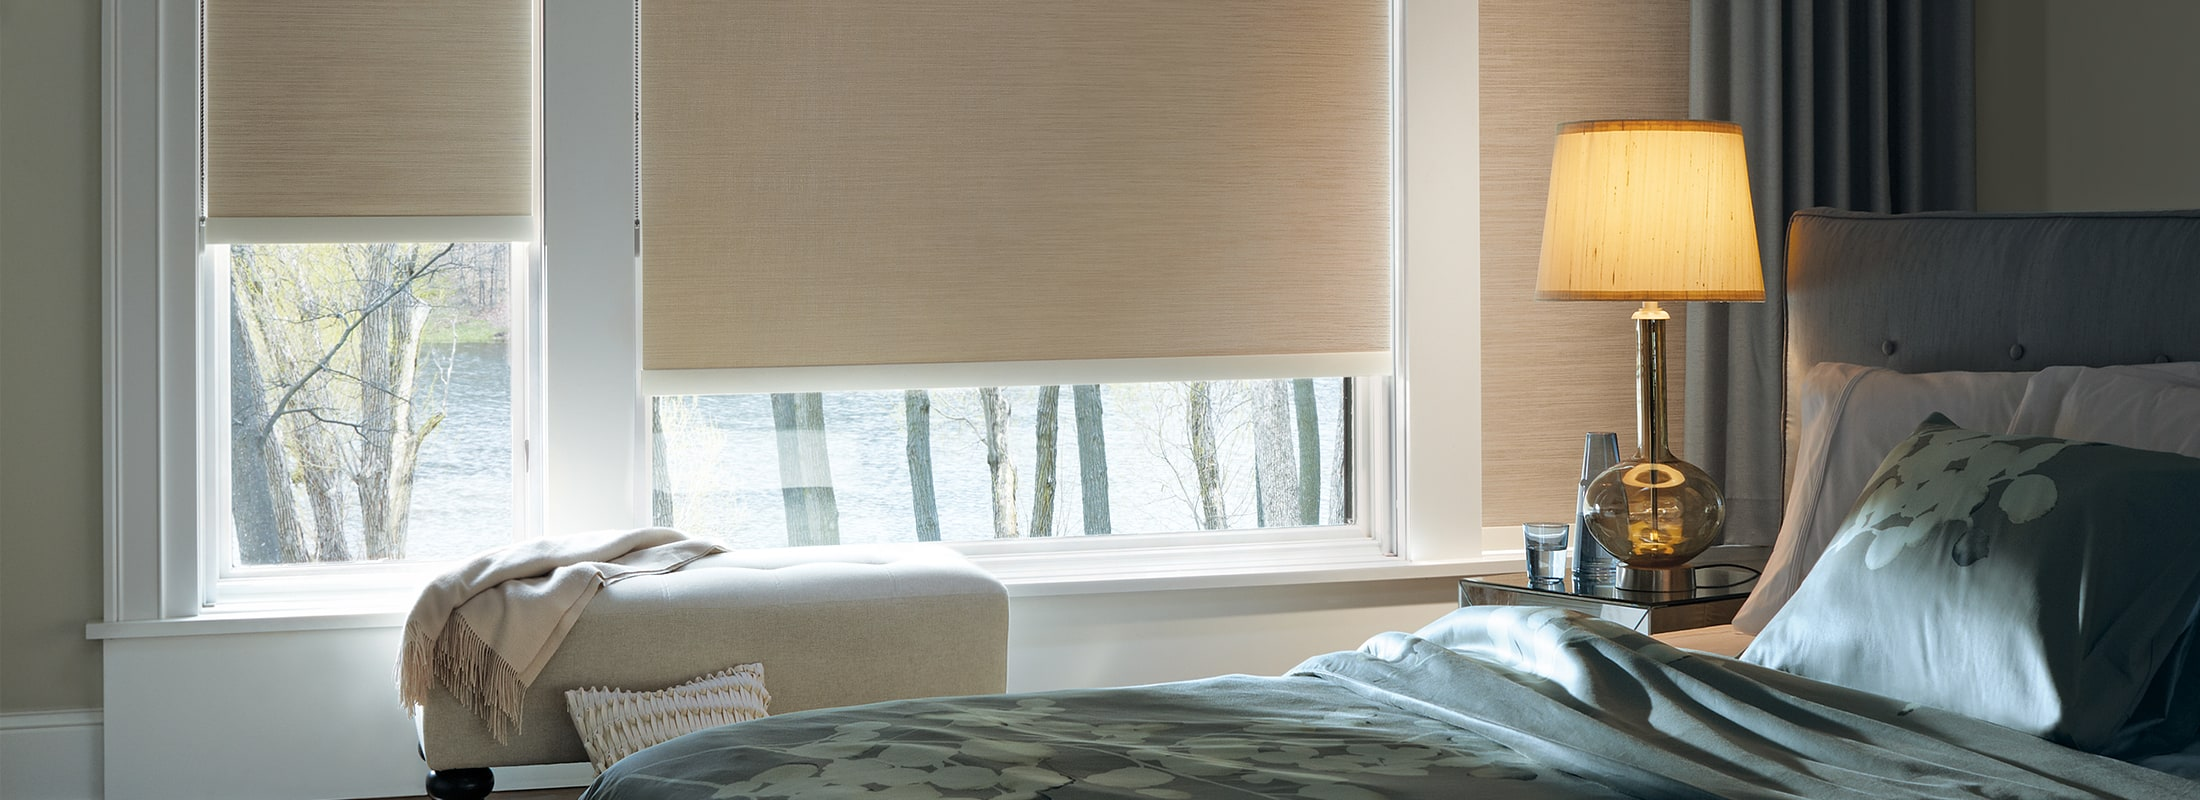 abachi in wooden blinds douglas carousel hunter parkland window treatments hardwood metal textures douglass firewood wood